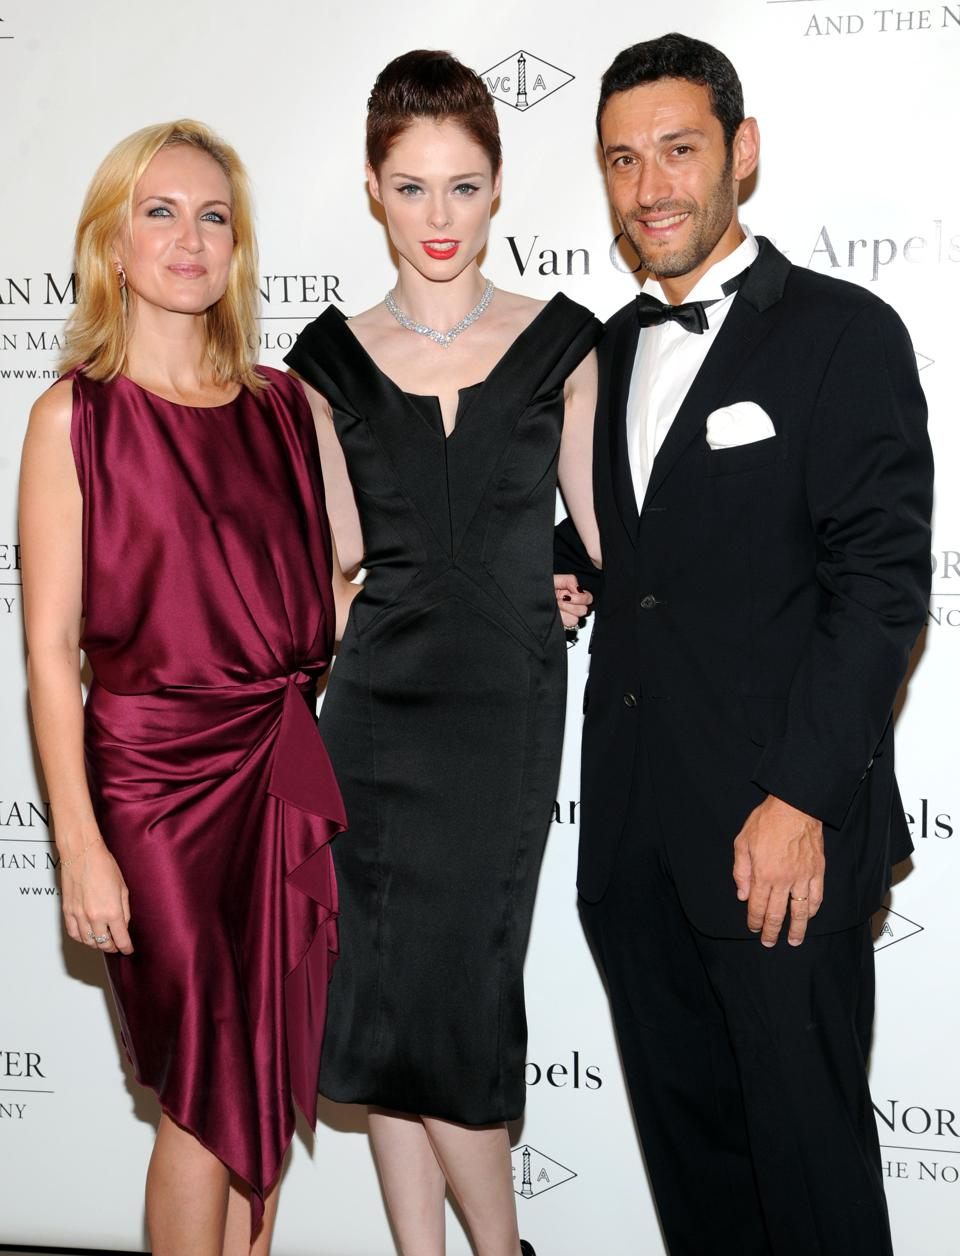 Kristina Buckley, left, Van Cleef & Arpels vice president of marketing and communications, Coco Rocha, center, and Alain Bernard pose for photographs during the fifth annual Norman Mailer Center benefit gala at the New York Public Library on Thursday, Oct. 17, 2013, in New York. (Photo by Evan Agostini/Invision/AP)